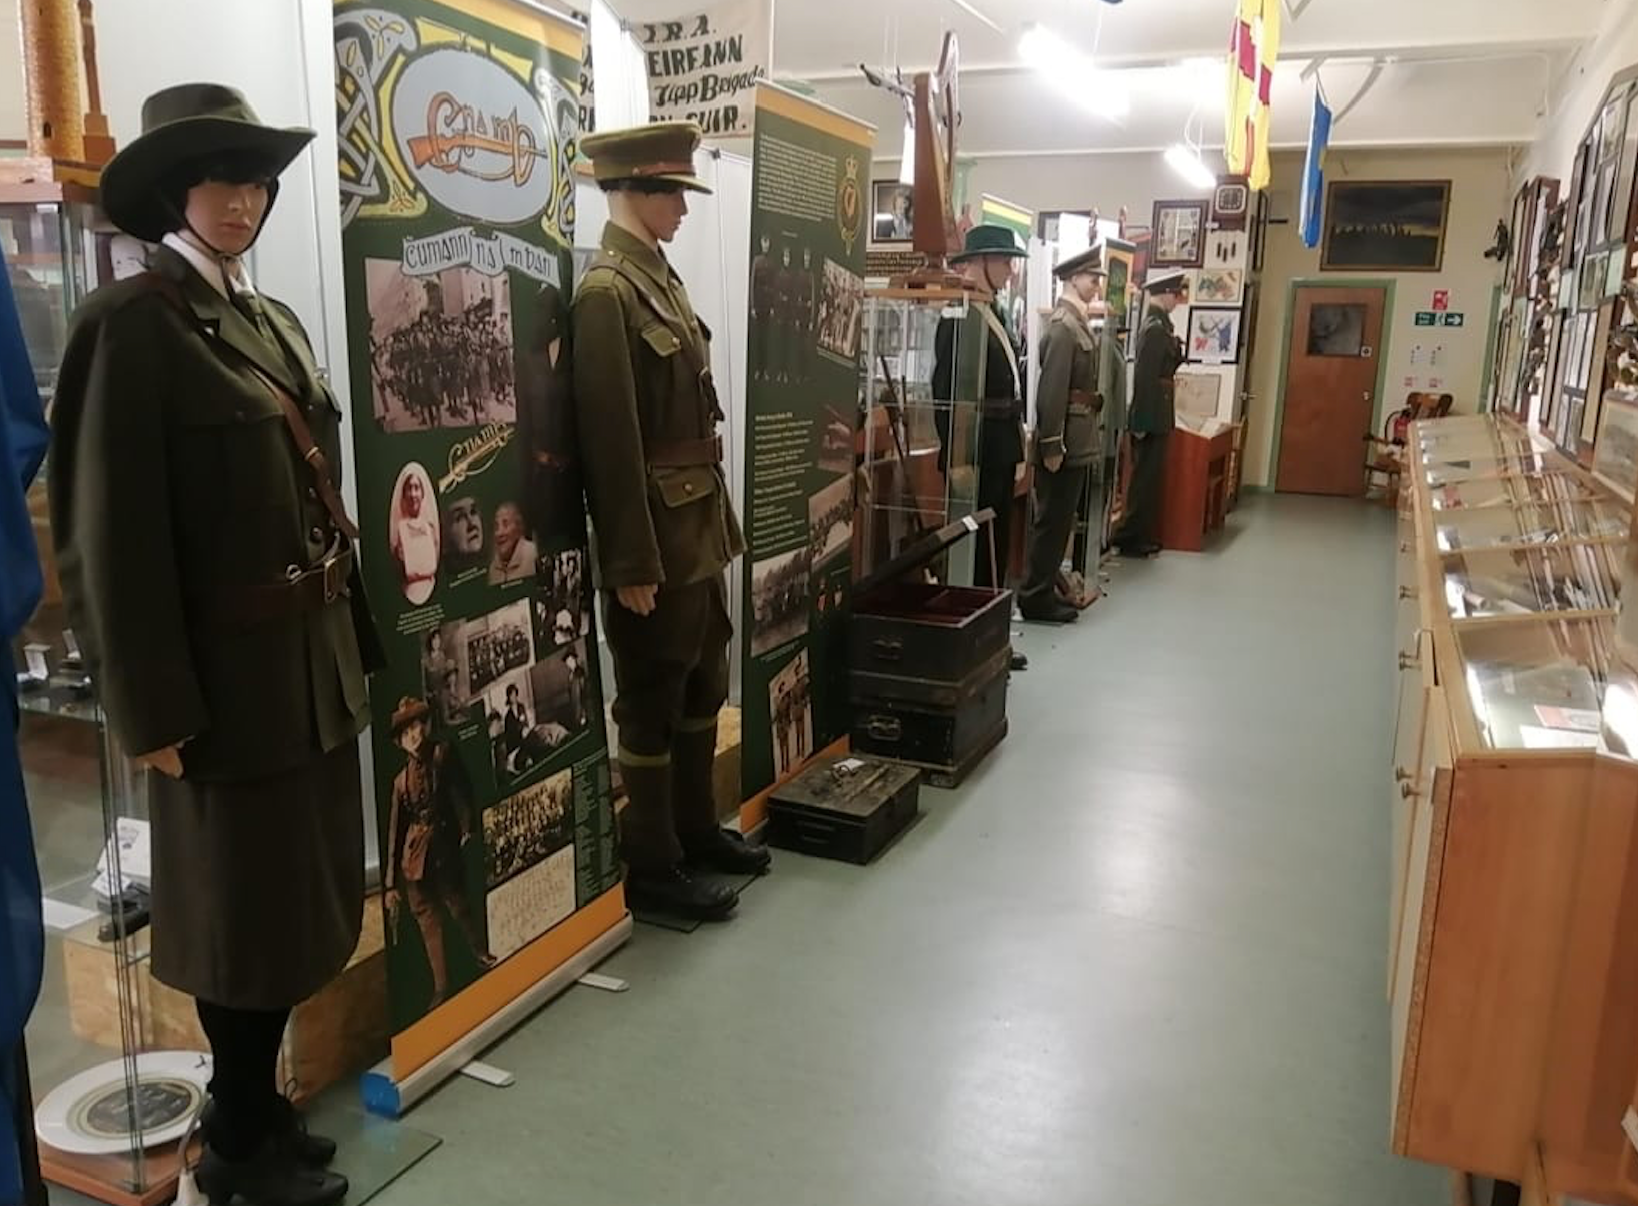 mannequins in military uniform on display at the Irish Republican History Museum